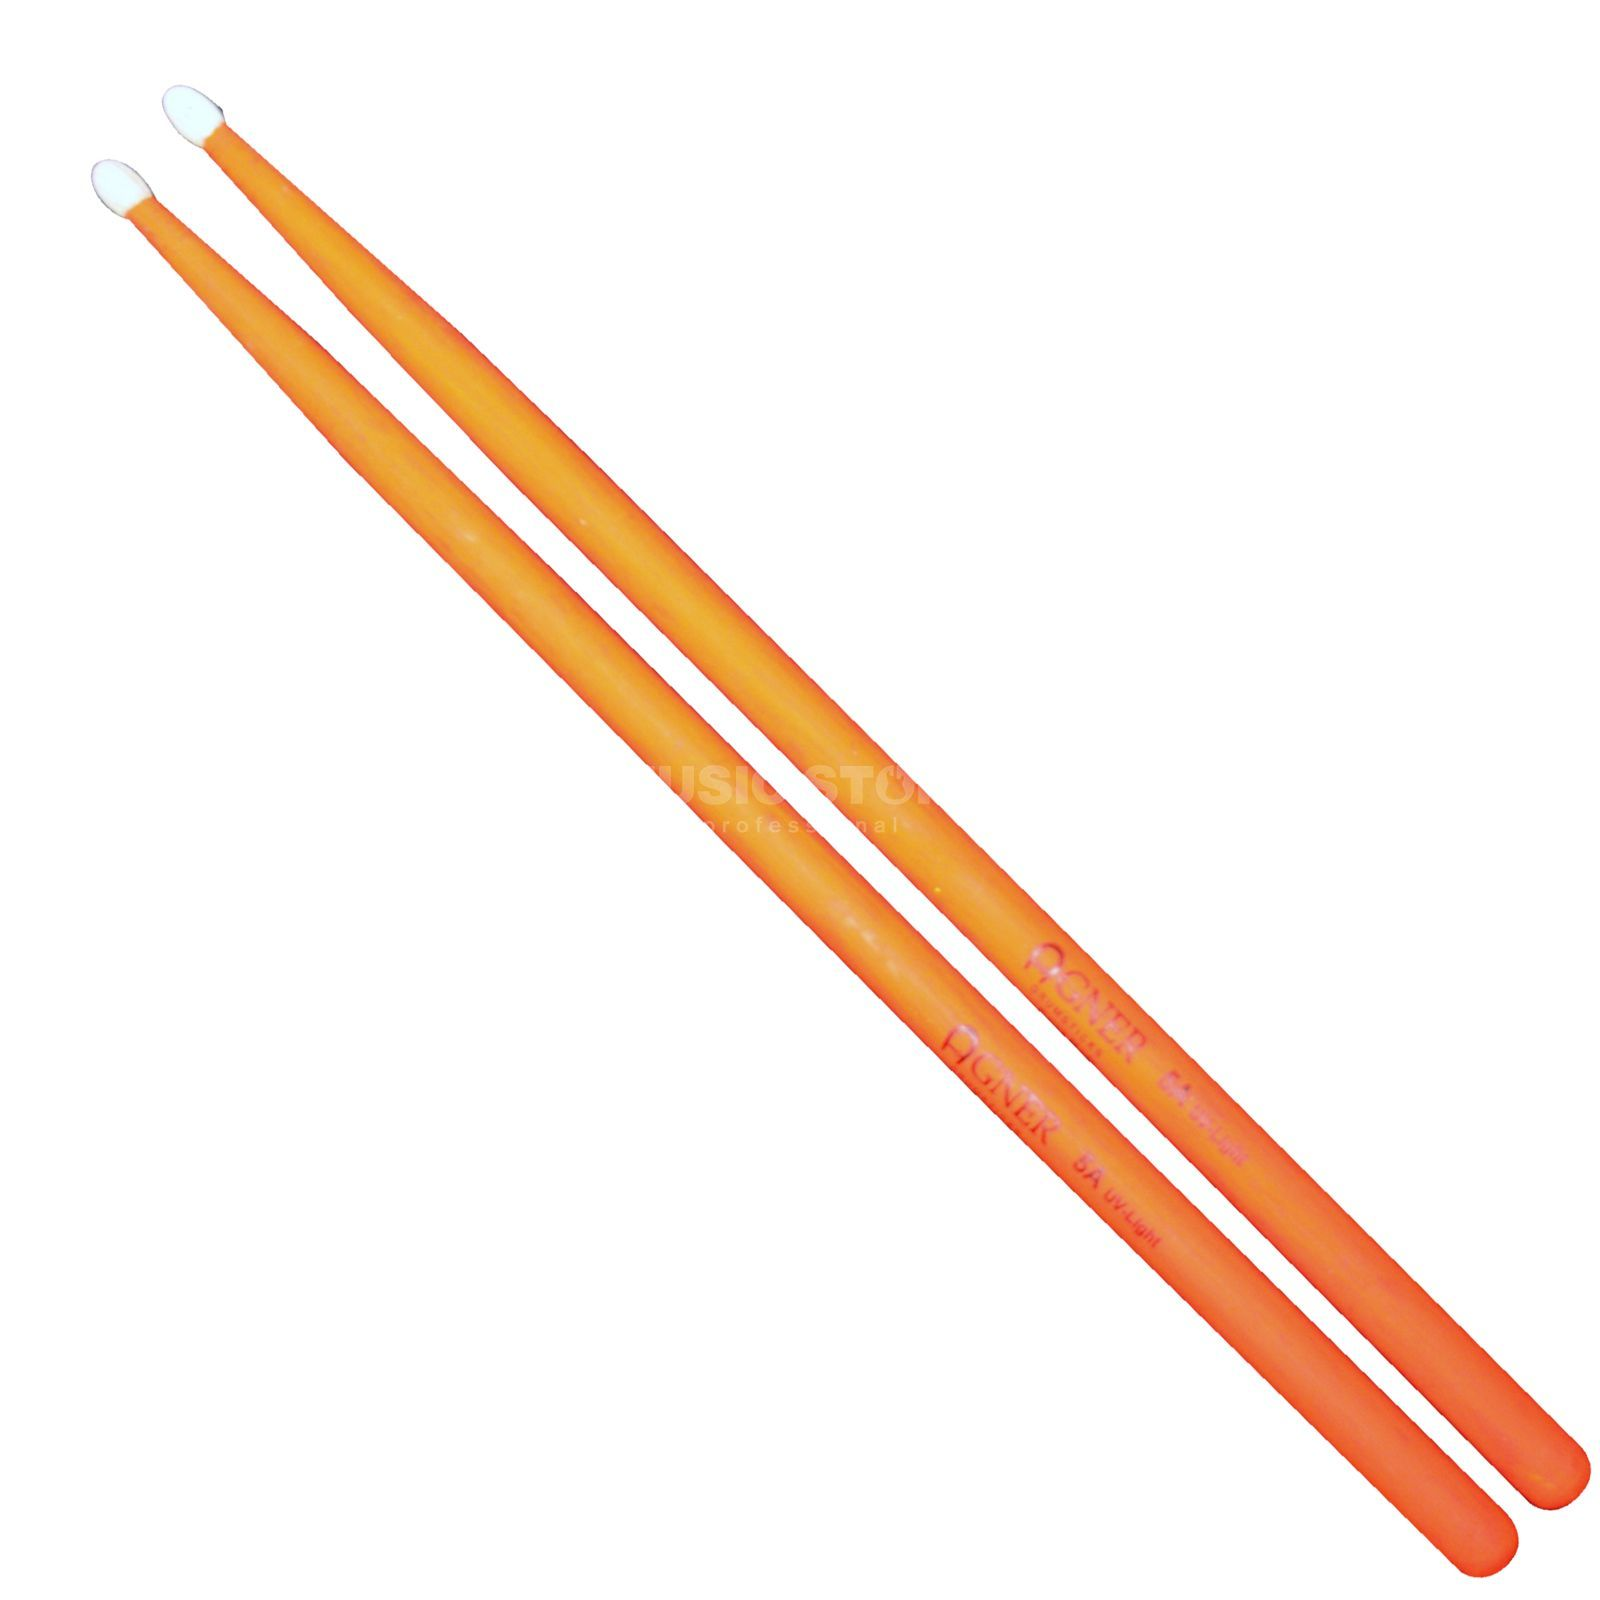 Agner UV-Glowsticks, 5A, Orange Produktbild